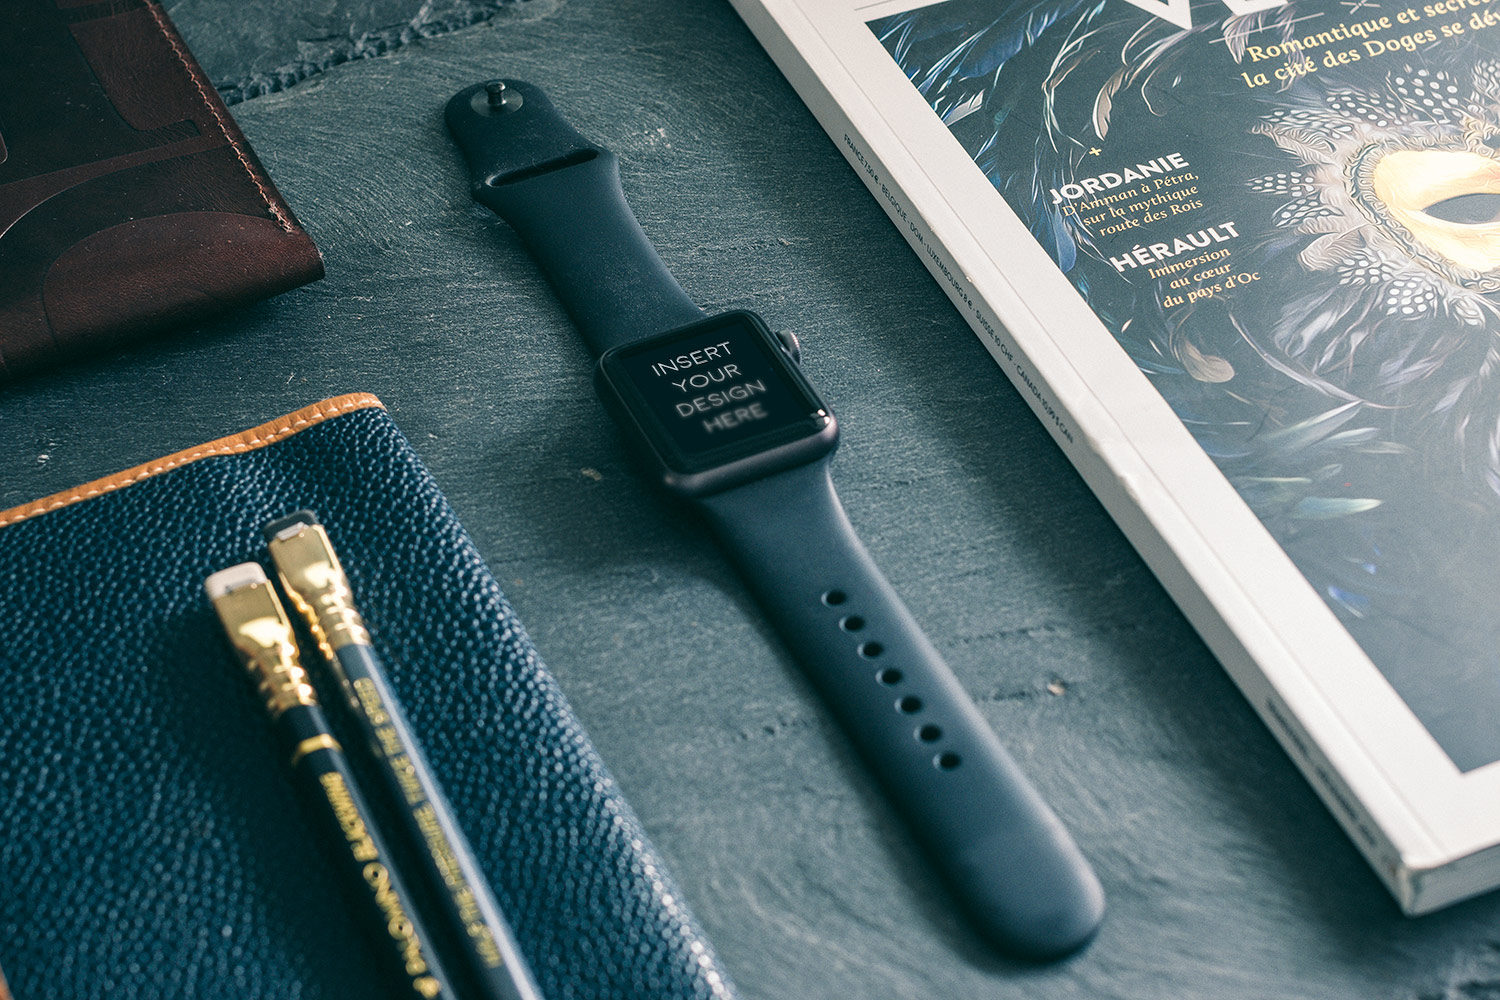 Apple Watch & iPhone 6 Mockups Free